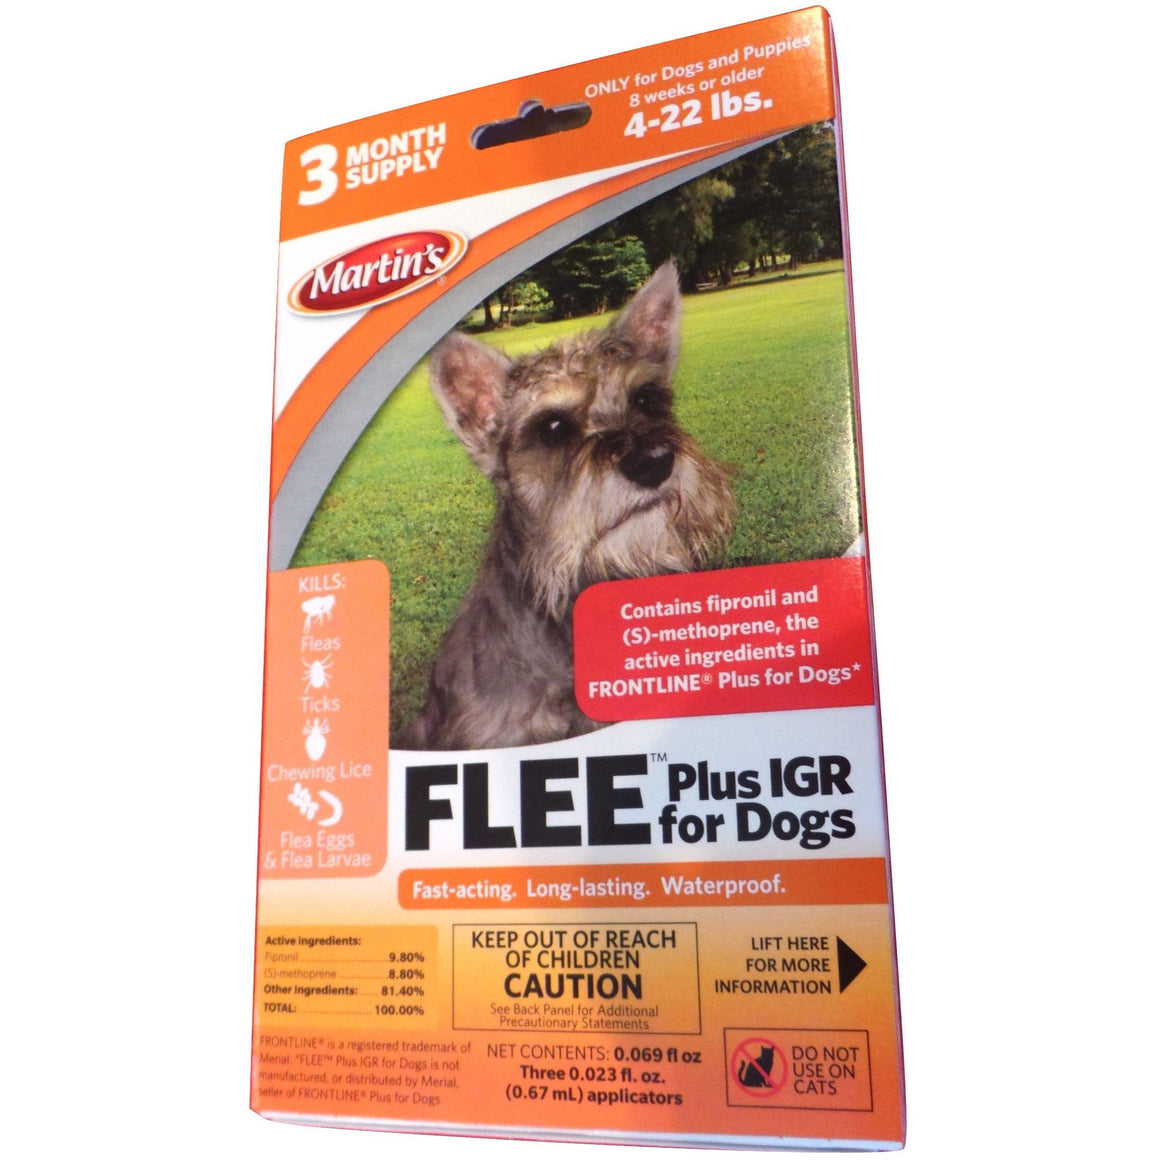 Flee Plus IGR for Dogs 4 - 22 Lbs. - Seed World